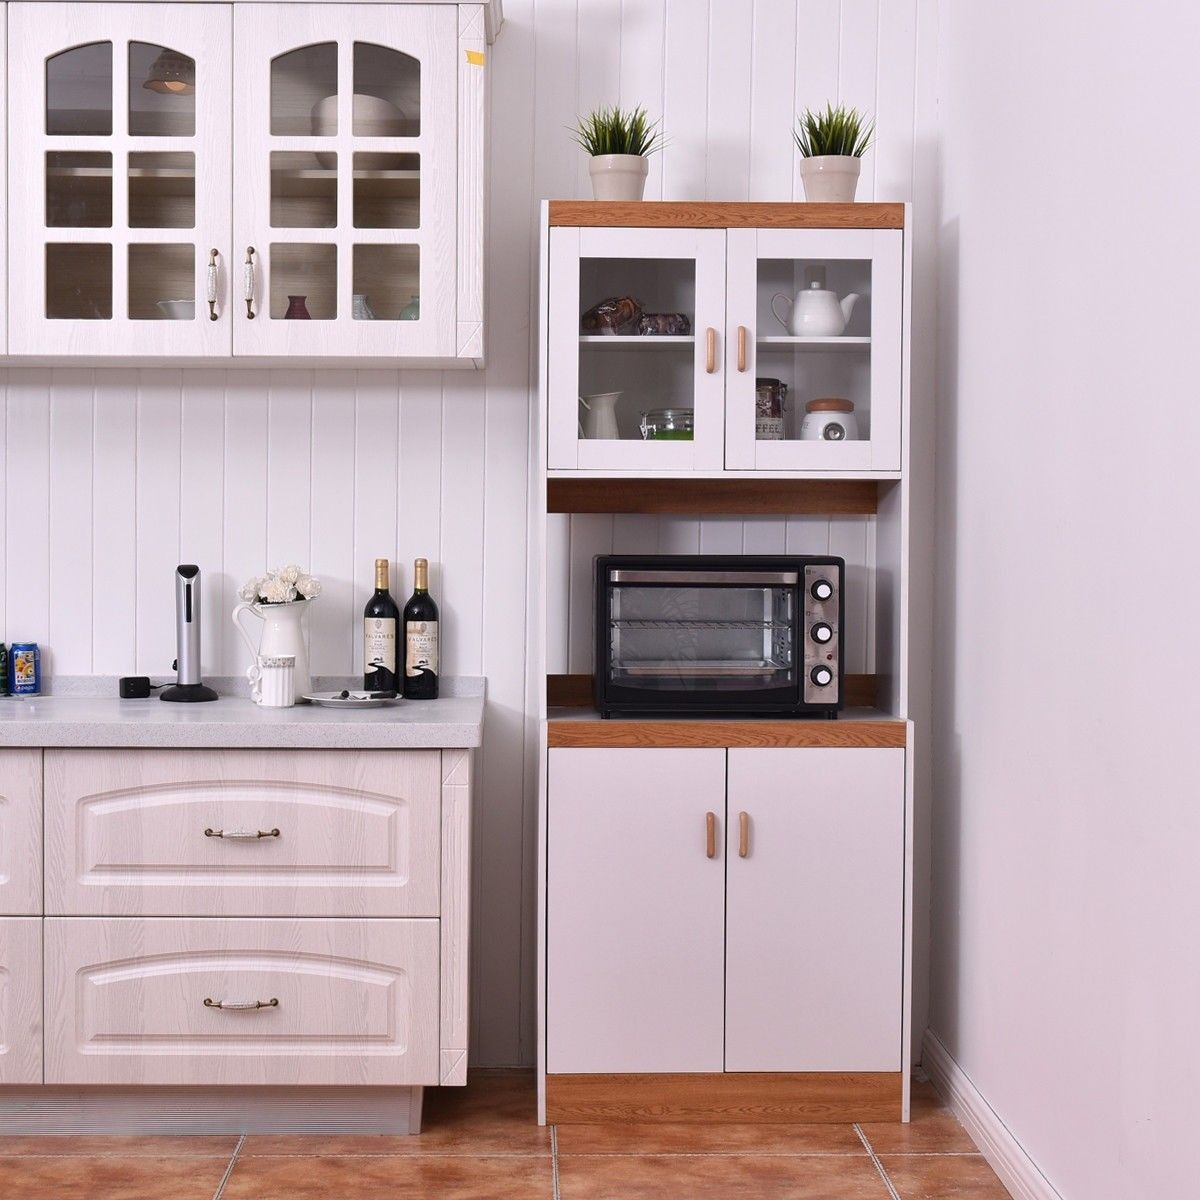 Tall Shelves Microwave Cart Stand Kitchen Storage Cabinet Kitchen Cabinet Storage Microwave In Kitchen Storage Cabinet Shelves